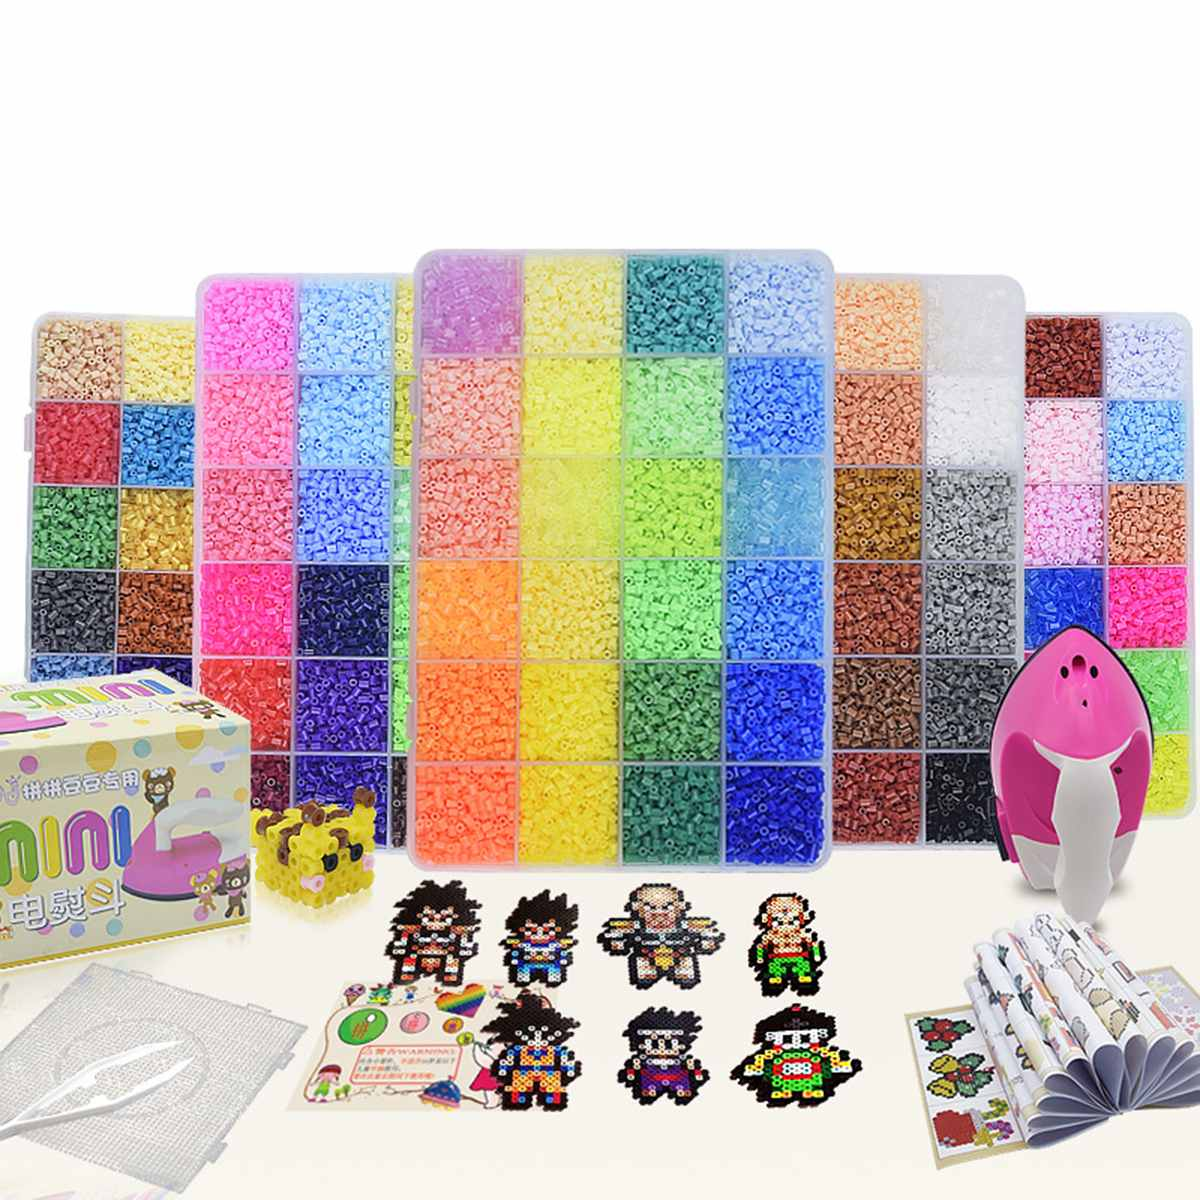 8000pcs 2.6mm EVA Hama Perler Beads Set Toy Kids Fun Craft DIY Handmaking Fuse Bead Multicolor Intelligence Educational Toys